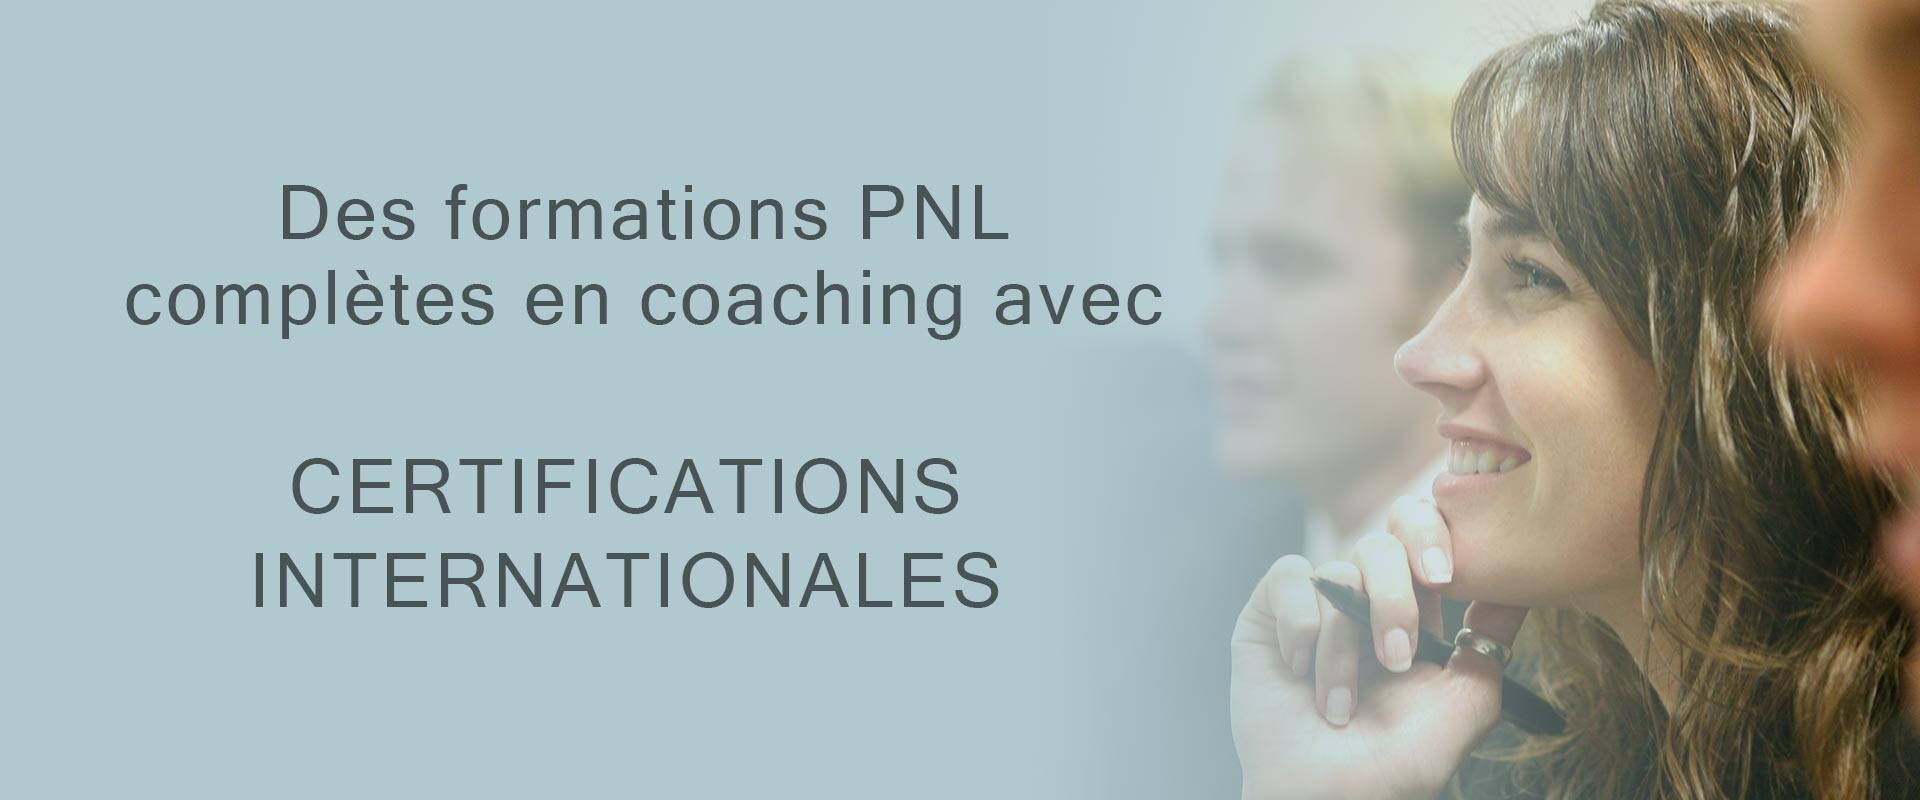 formation-pnl-coaching-certification-internationale